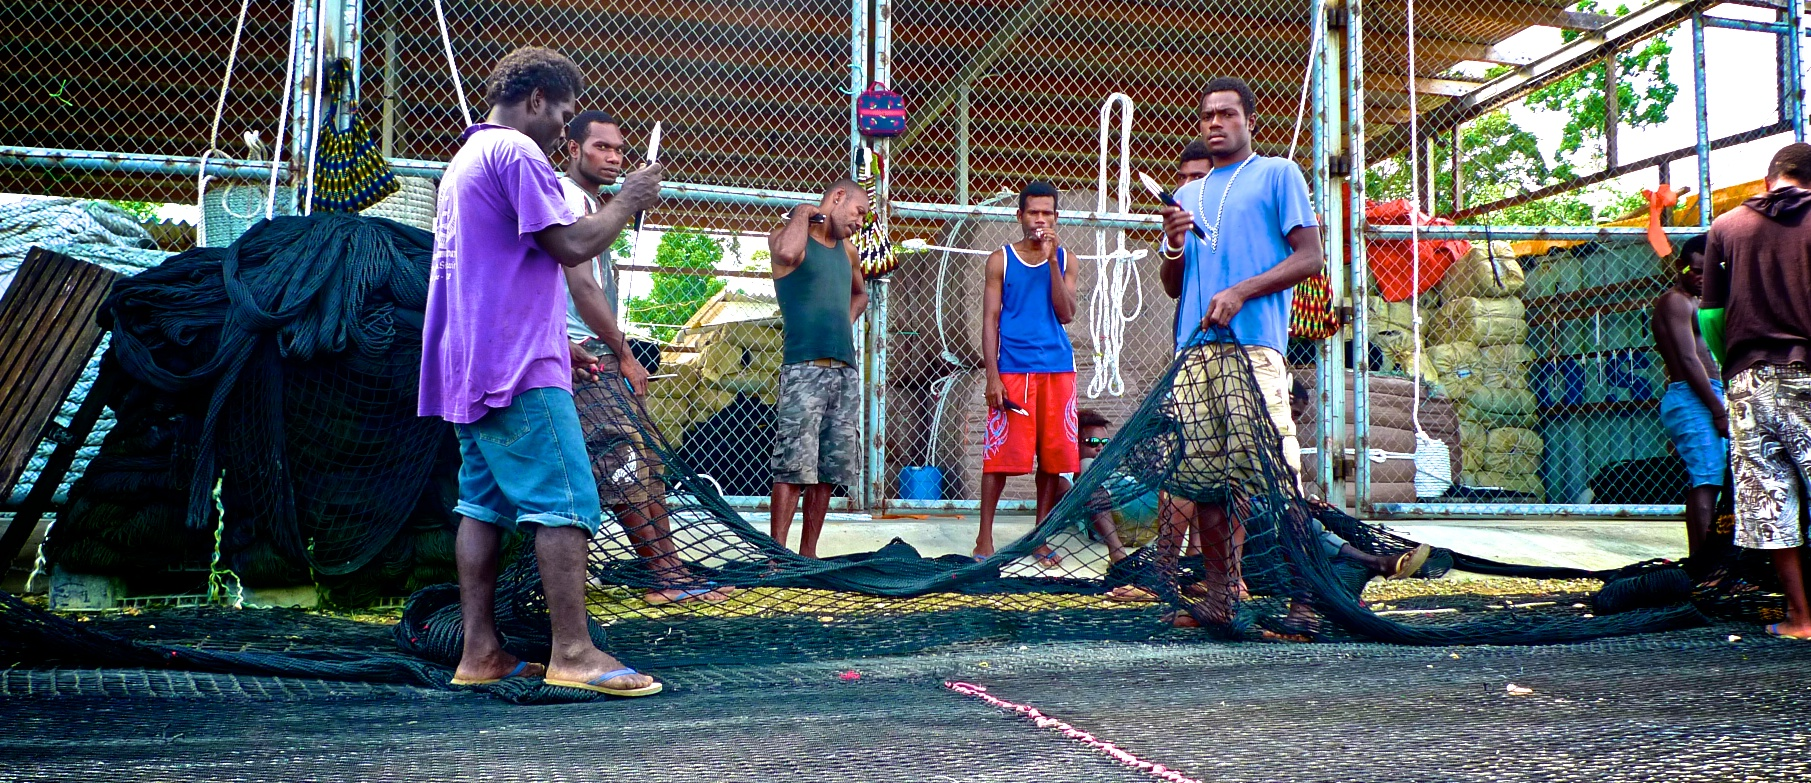 Net mending and building employs plenty of local youth